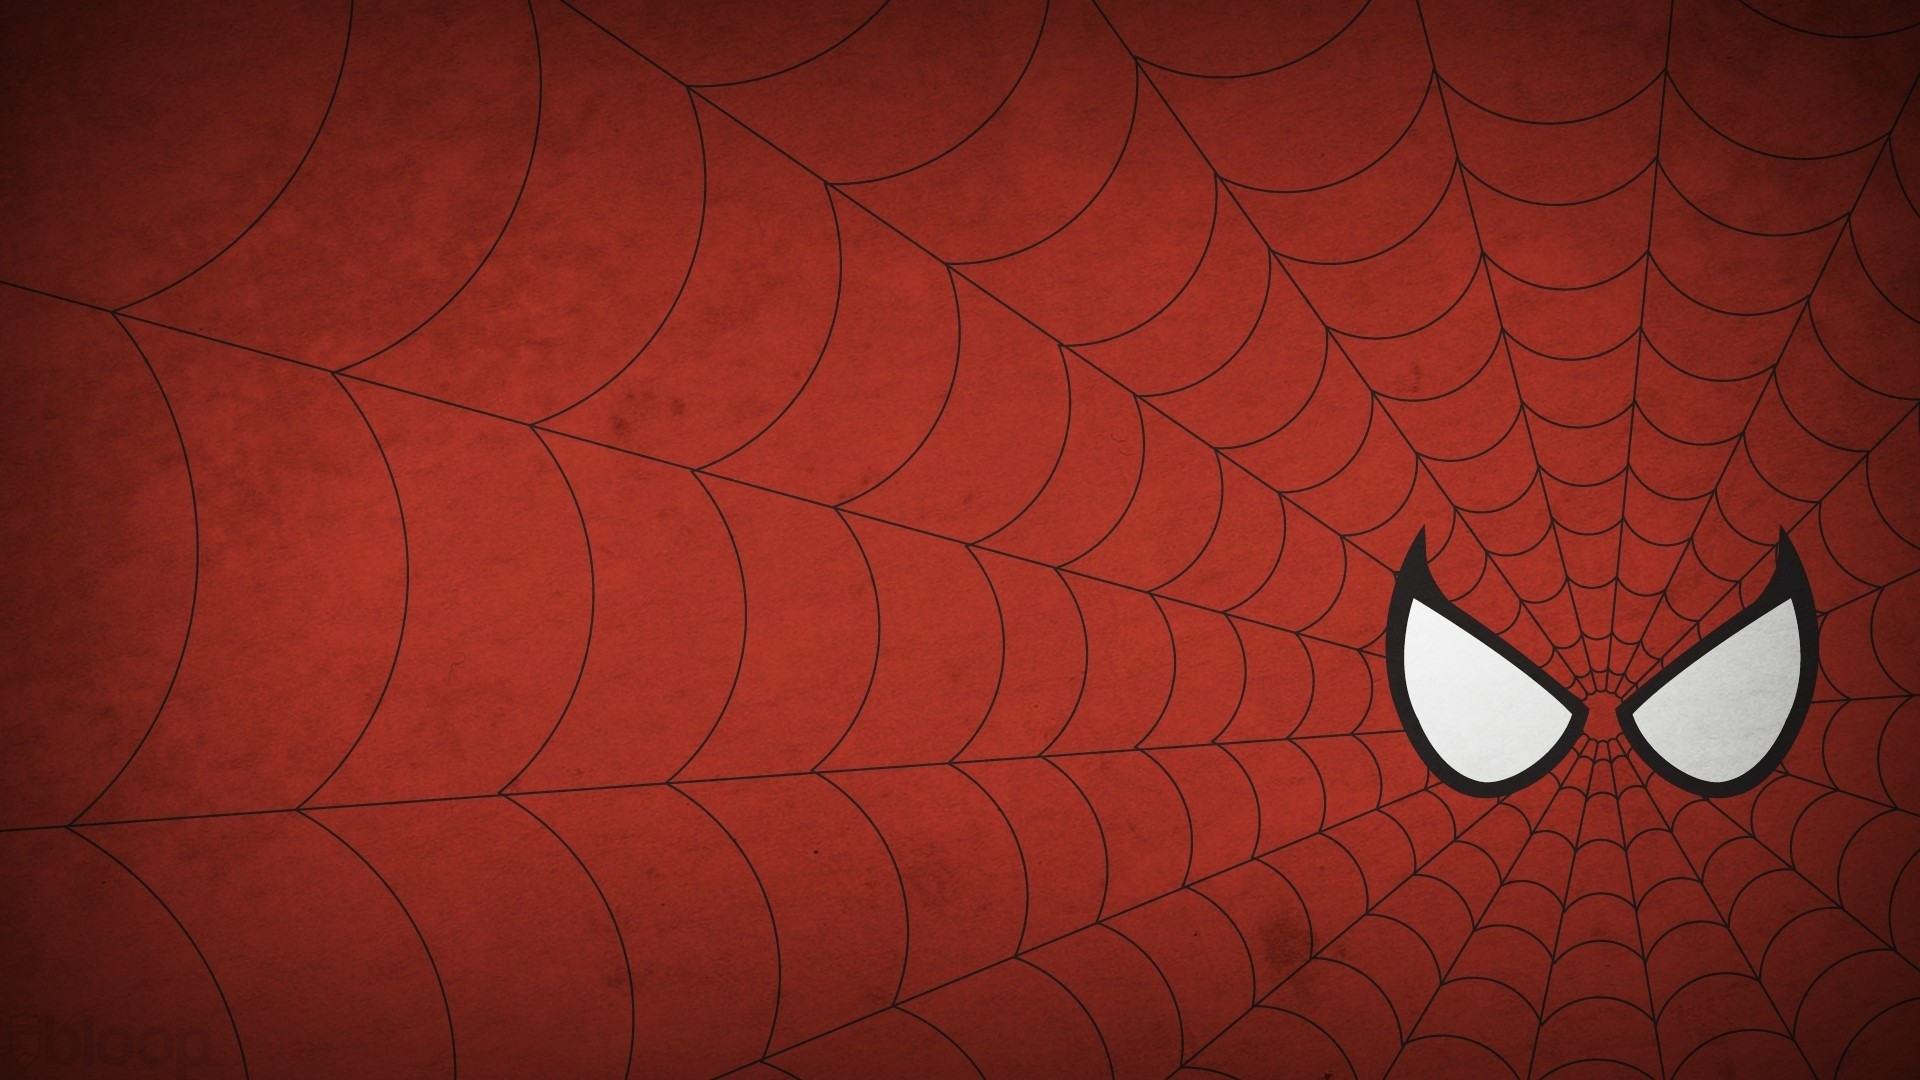 Res: 1920x1080, Spiderman Logo Wallpaper Images #fAi